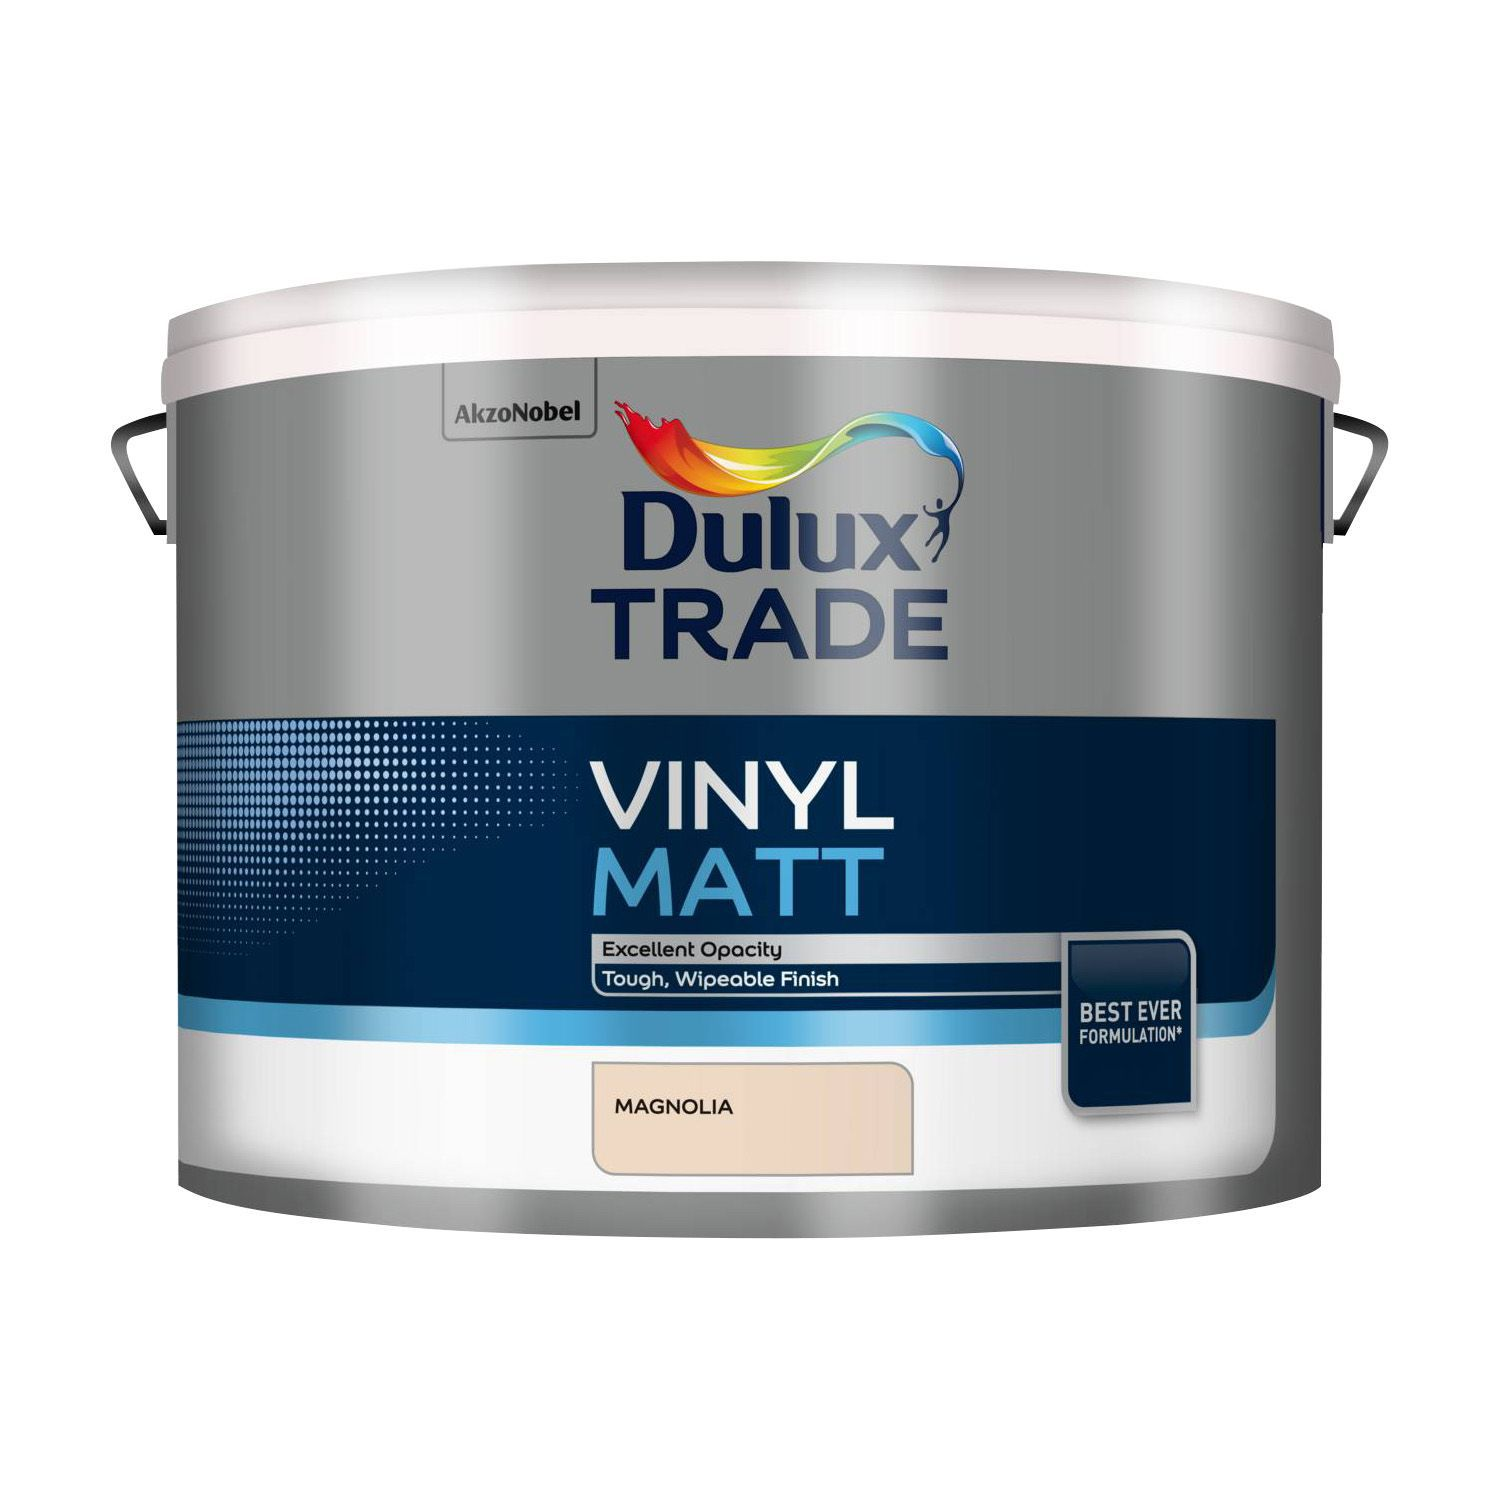 dulux natural calico matt emulsion paint 5l departments. Black Bedroom Furniture Sets. Home Design Ideas